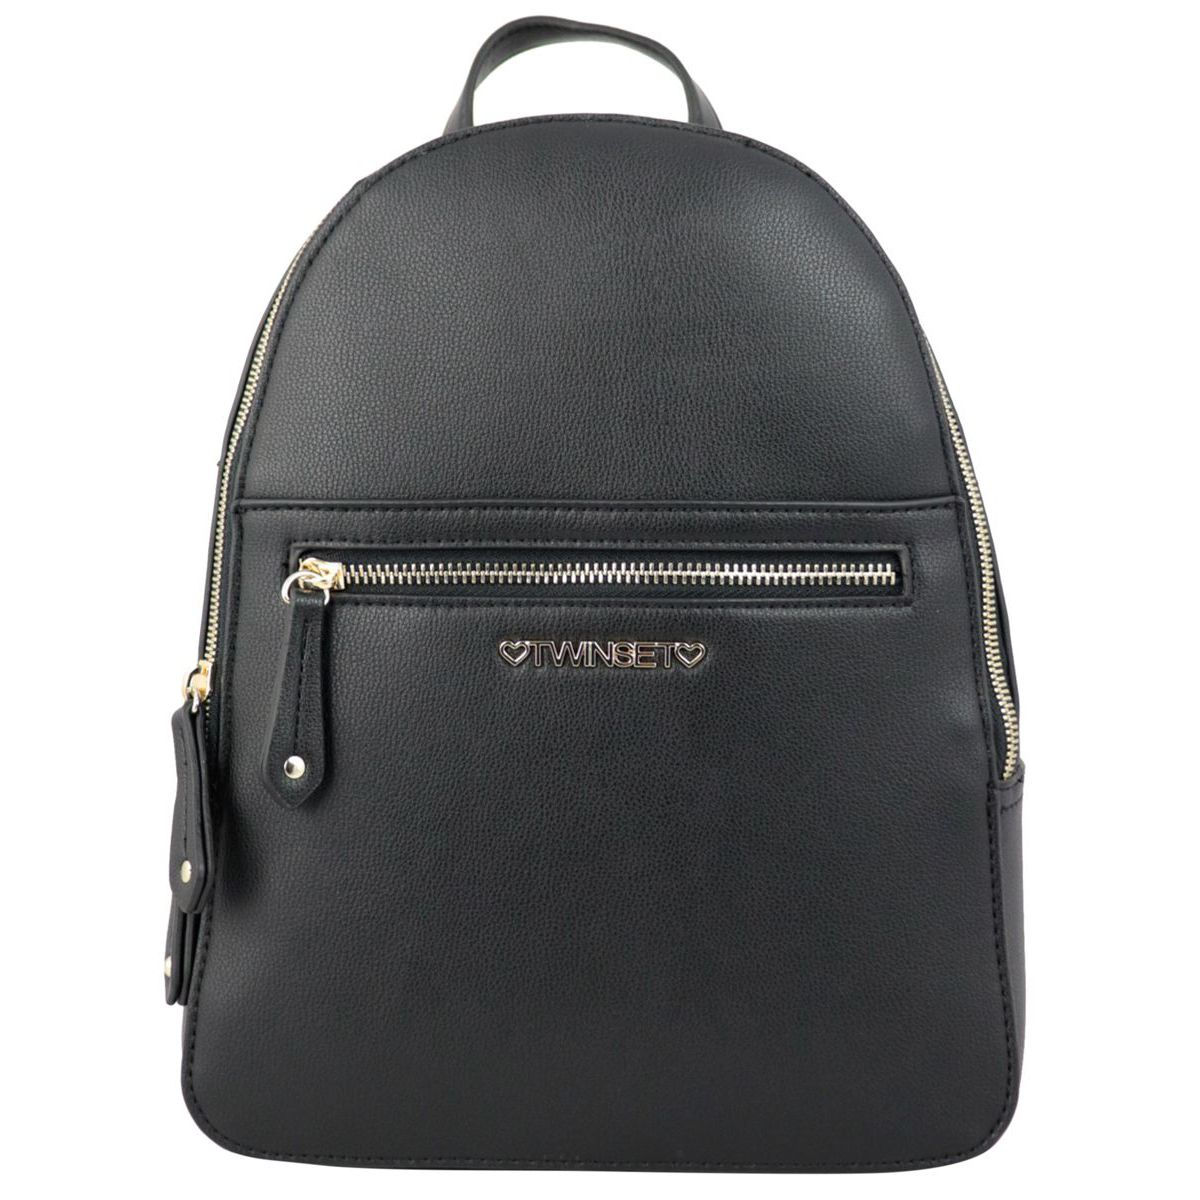 Faux leather backpack with logo Black Twin-Set